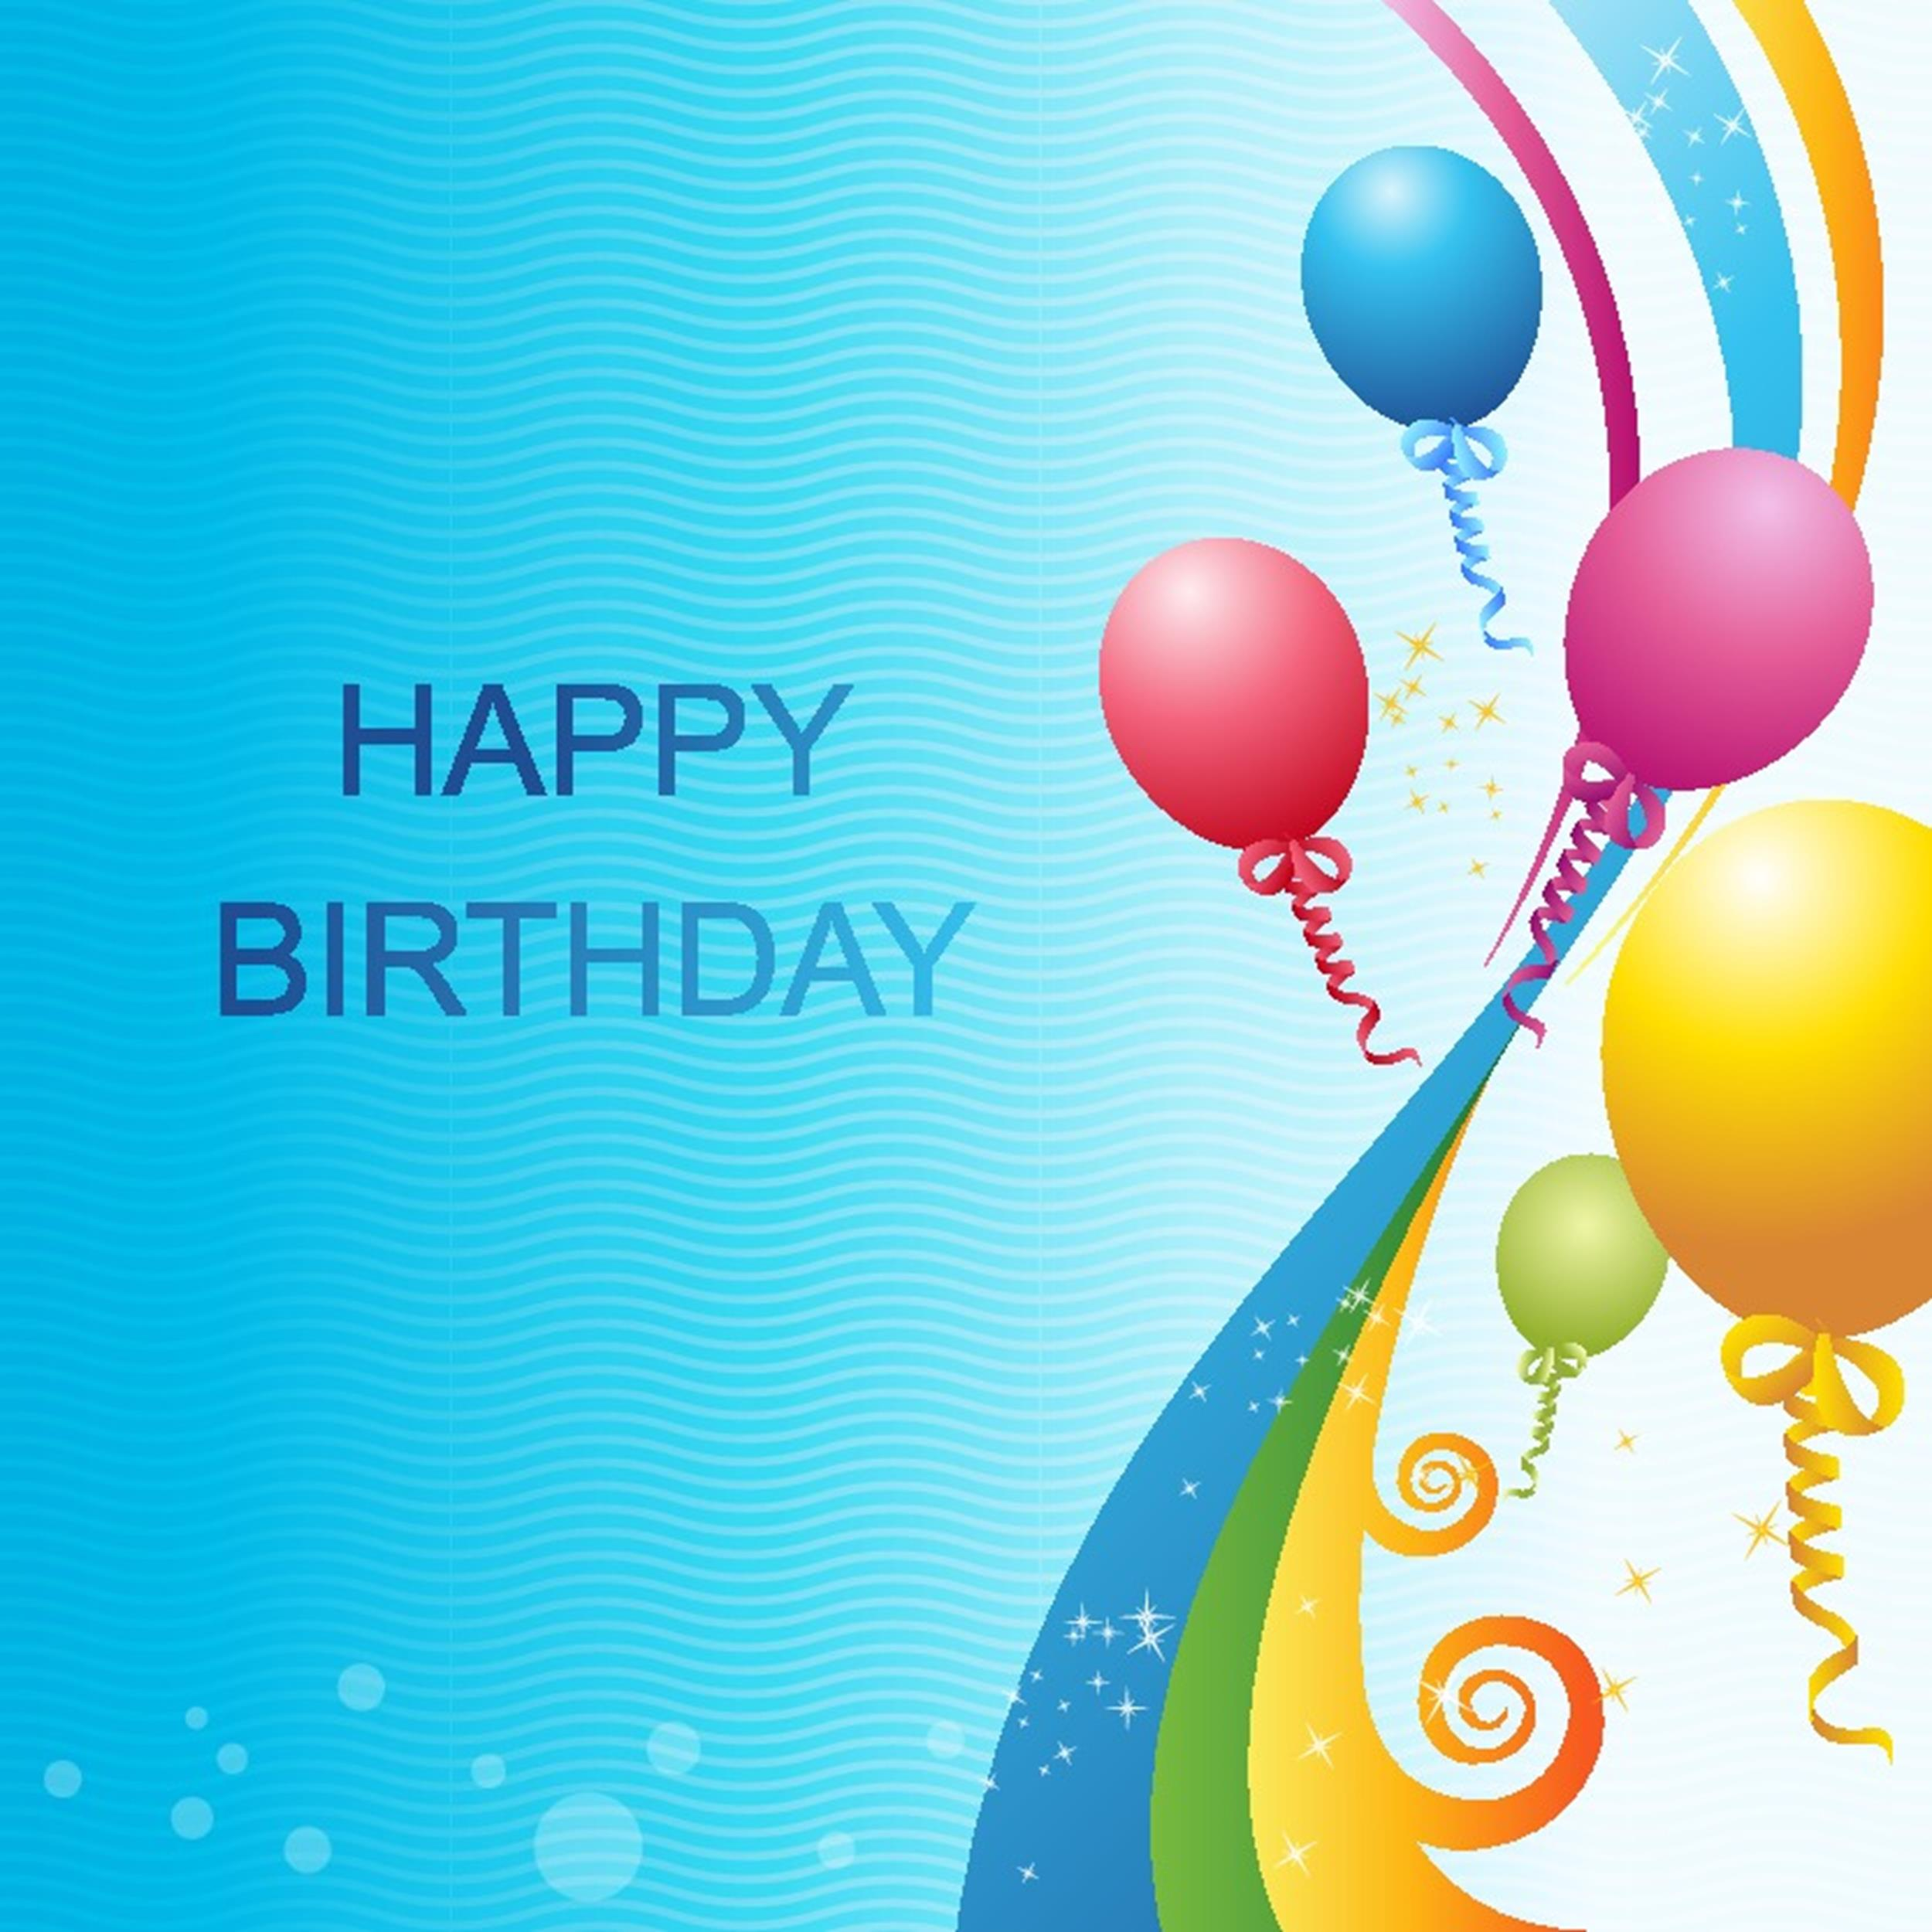 Free Birthday Card Template 12 Printable